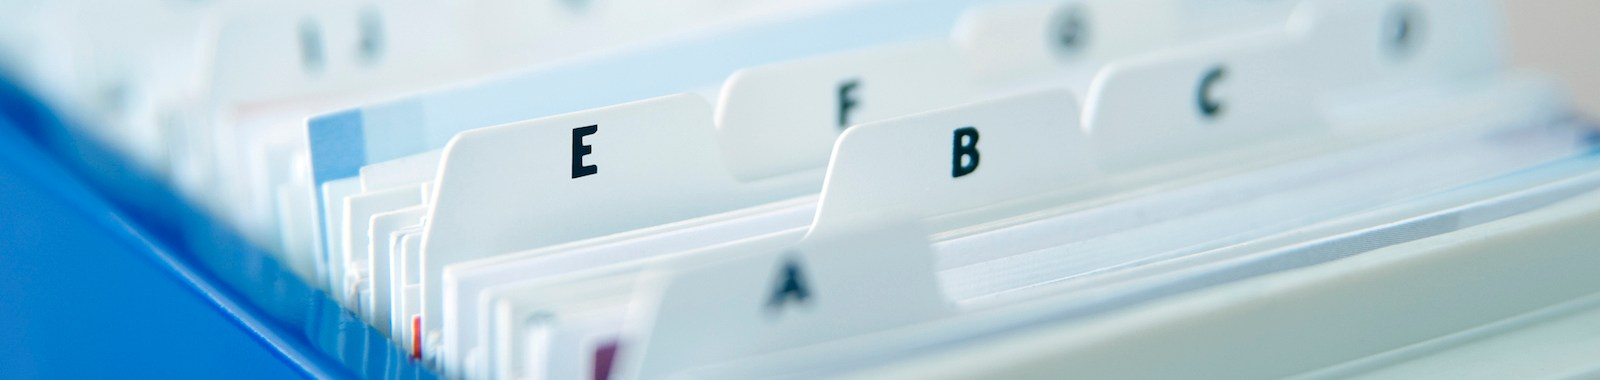 Alphabetical Index Cards In File Cabinet